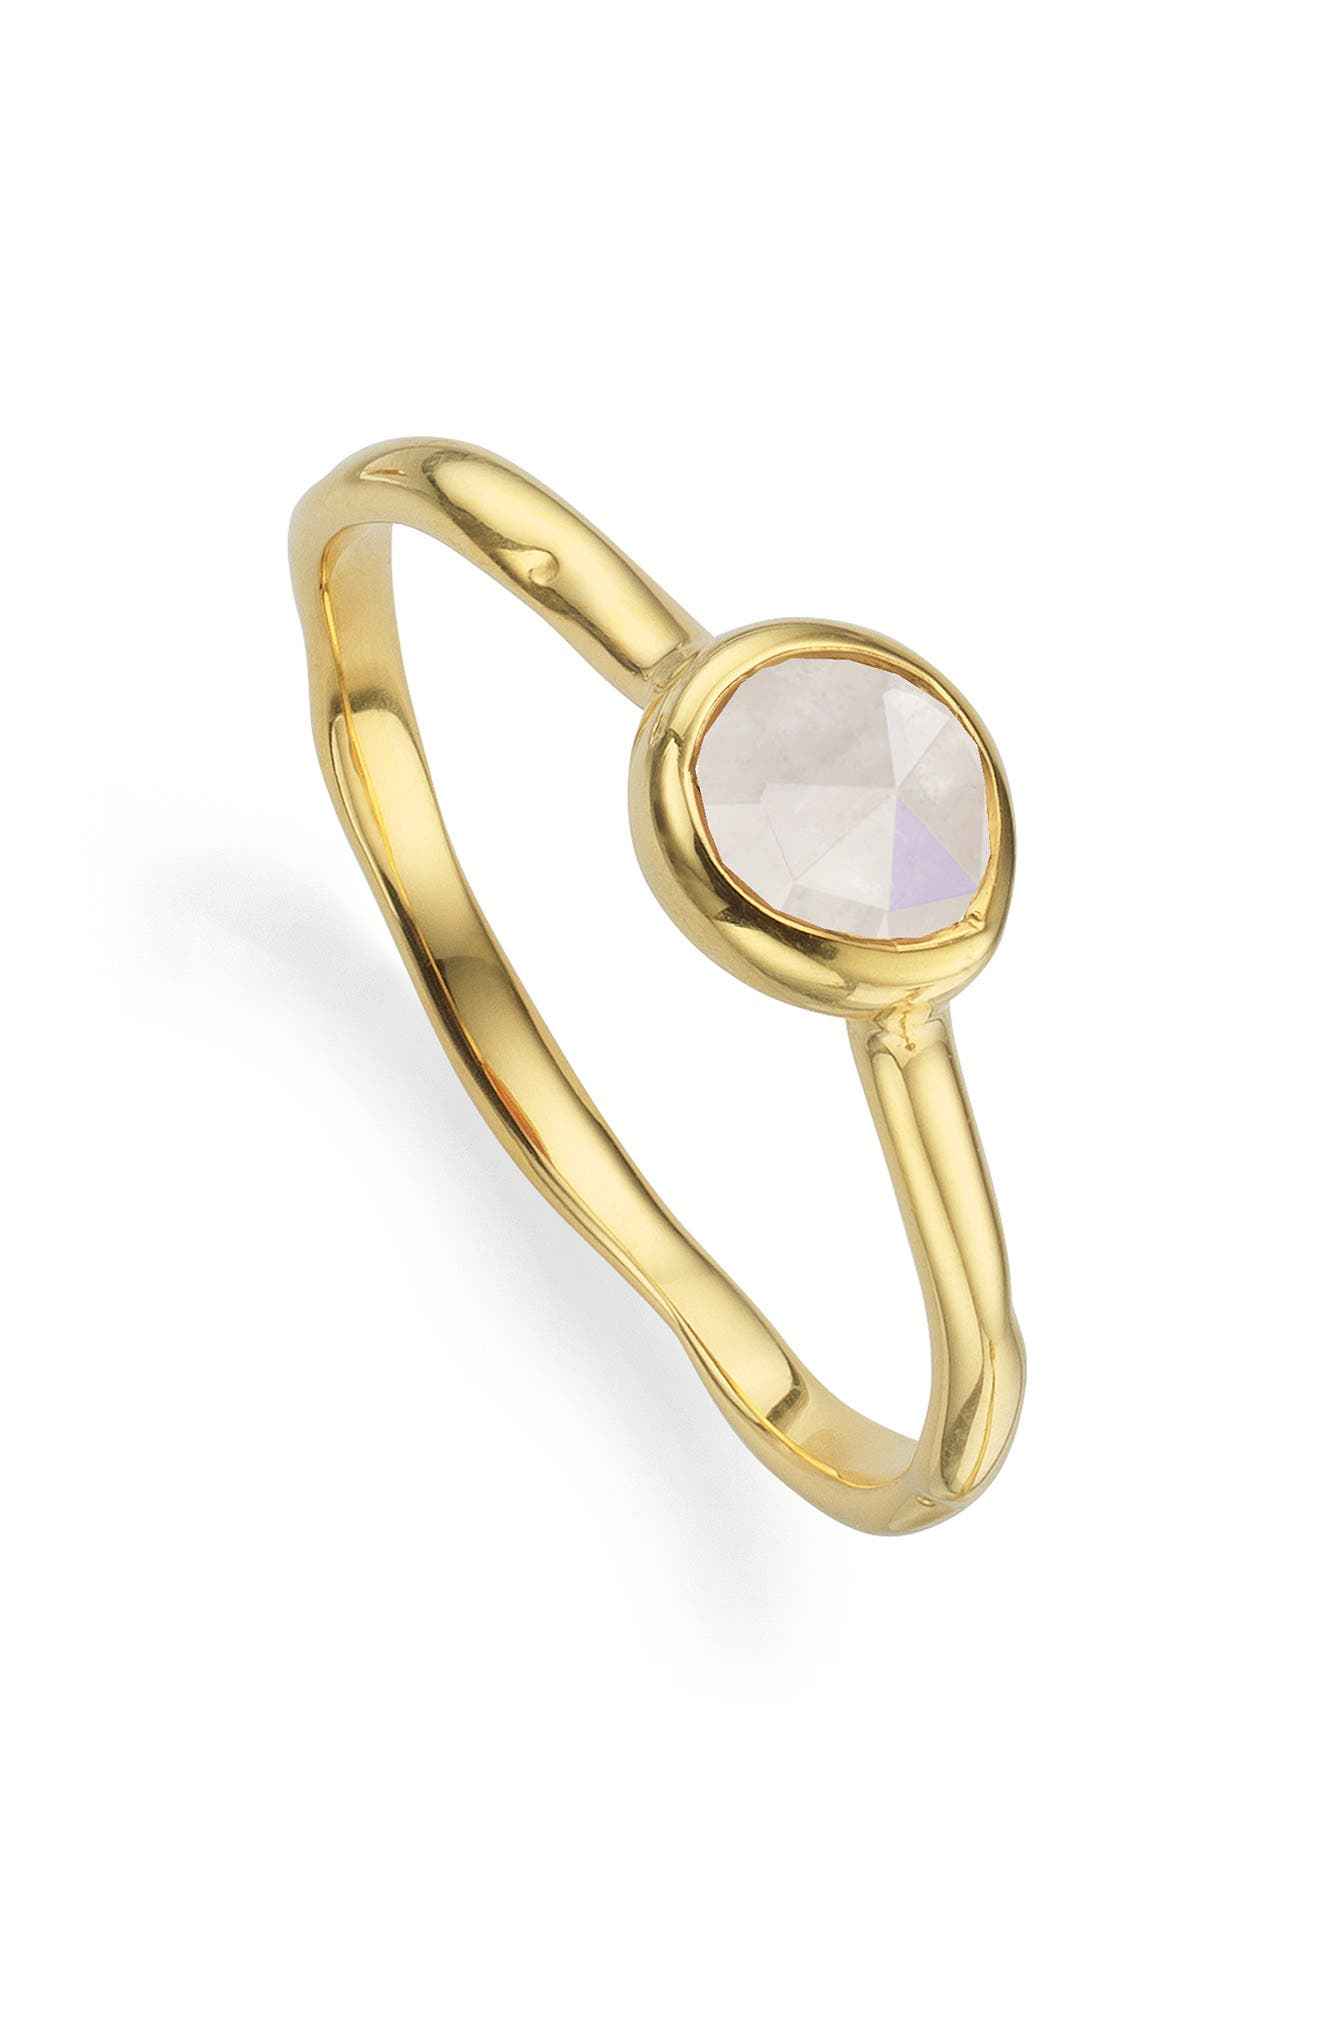 SIREN SMALL SEMIPRECIOUS STONE STACKING RING